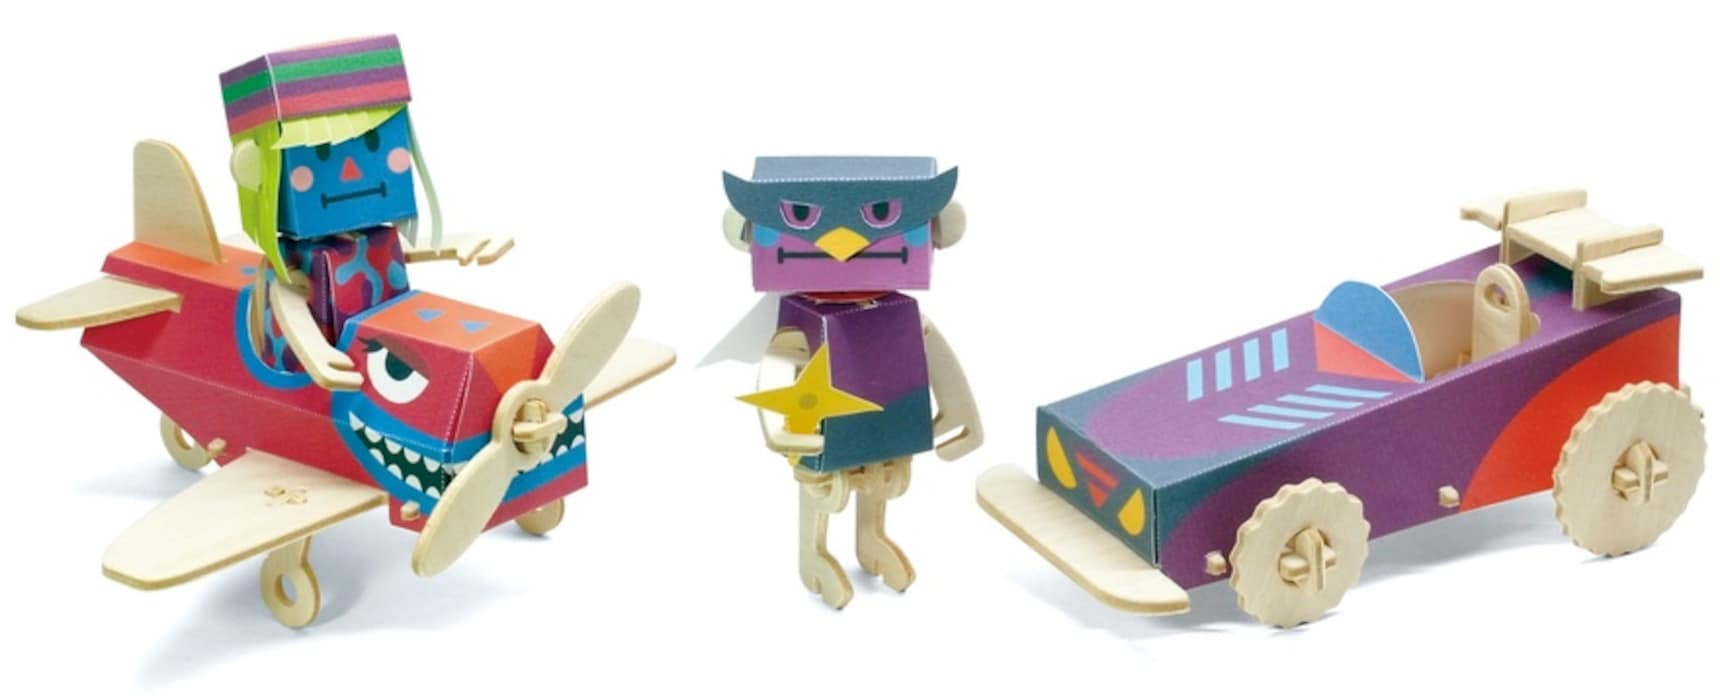 7 Toy Winners of the Good Design Award